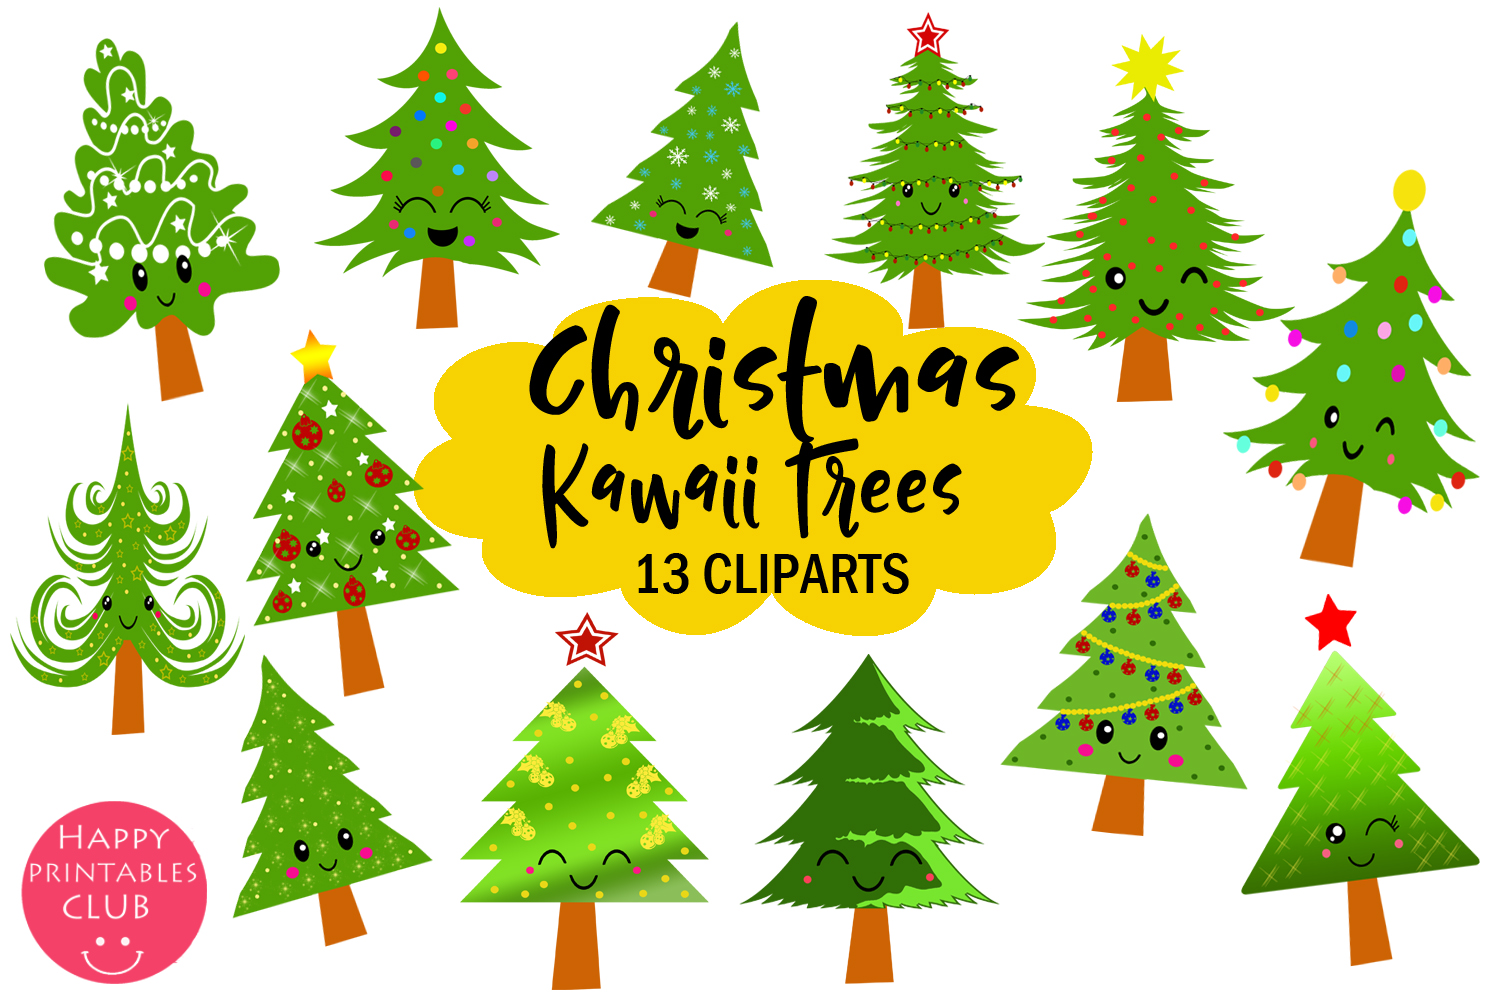 Cute Kawaii Christmas Trees Clipart Graphic By Happy Printables Club Creative Fabrica Use them to create unique greeting cards. cute kawaii christmas trees clipart